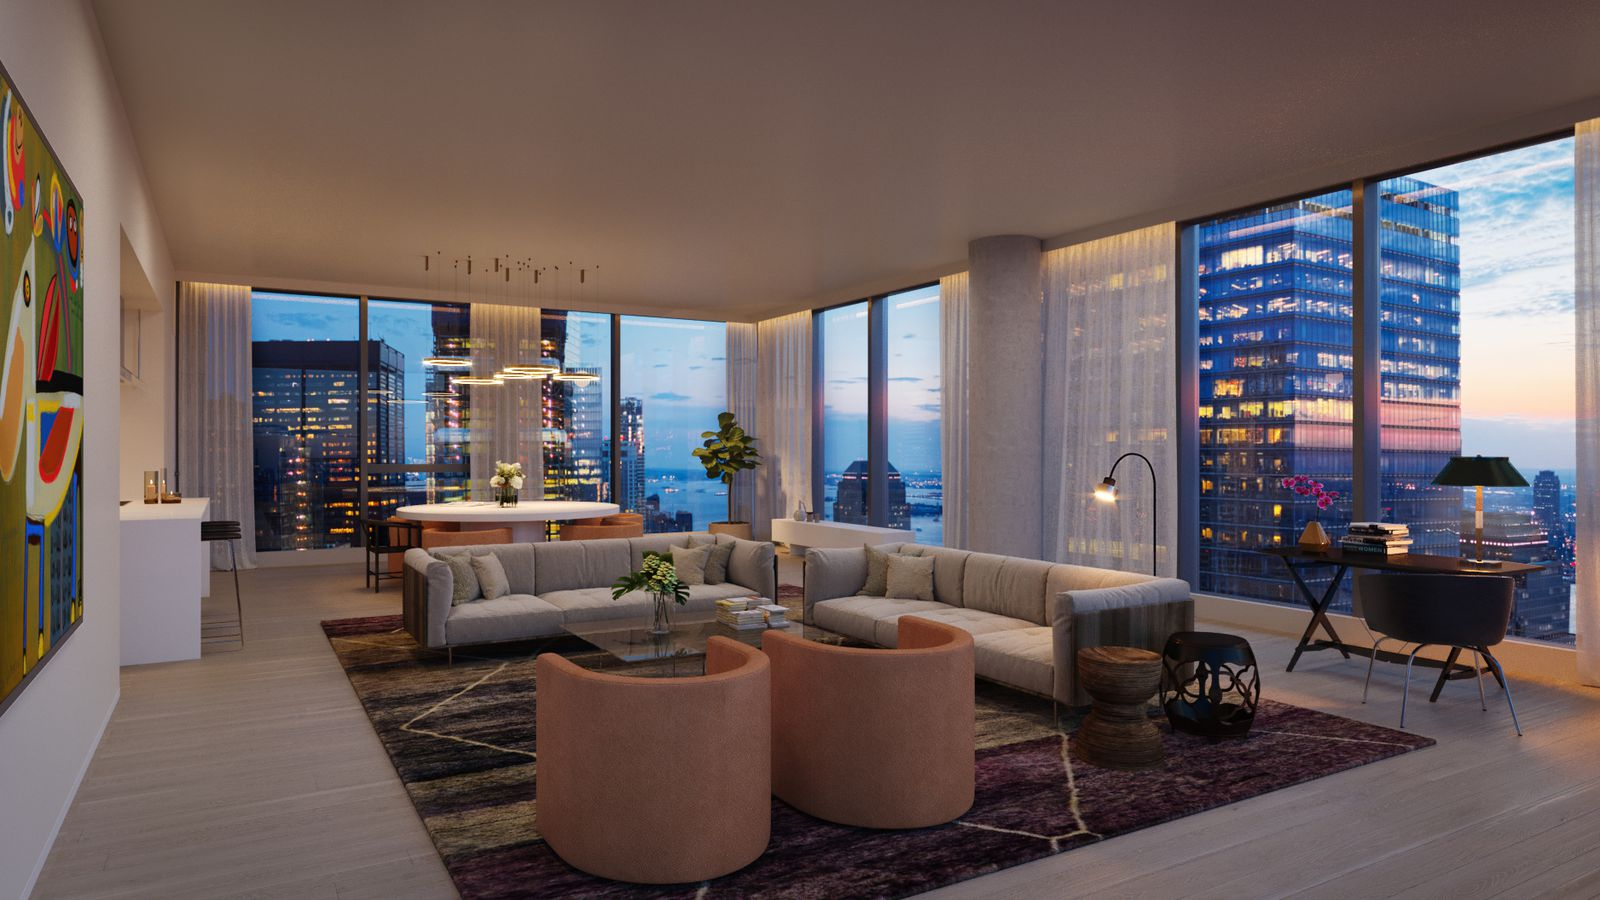 New looks at 45 park place sharif el gamal s fidi condo for Condos for sale in new york